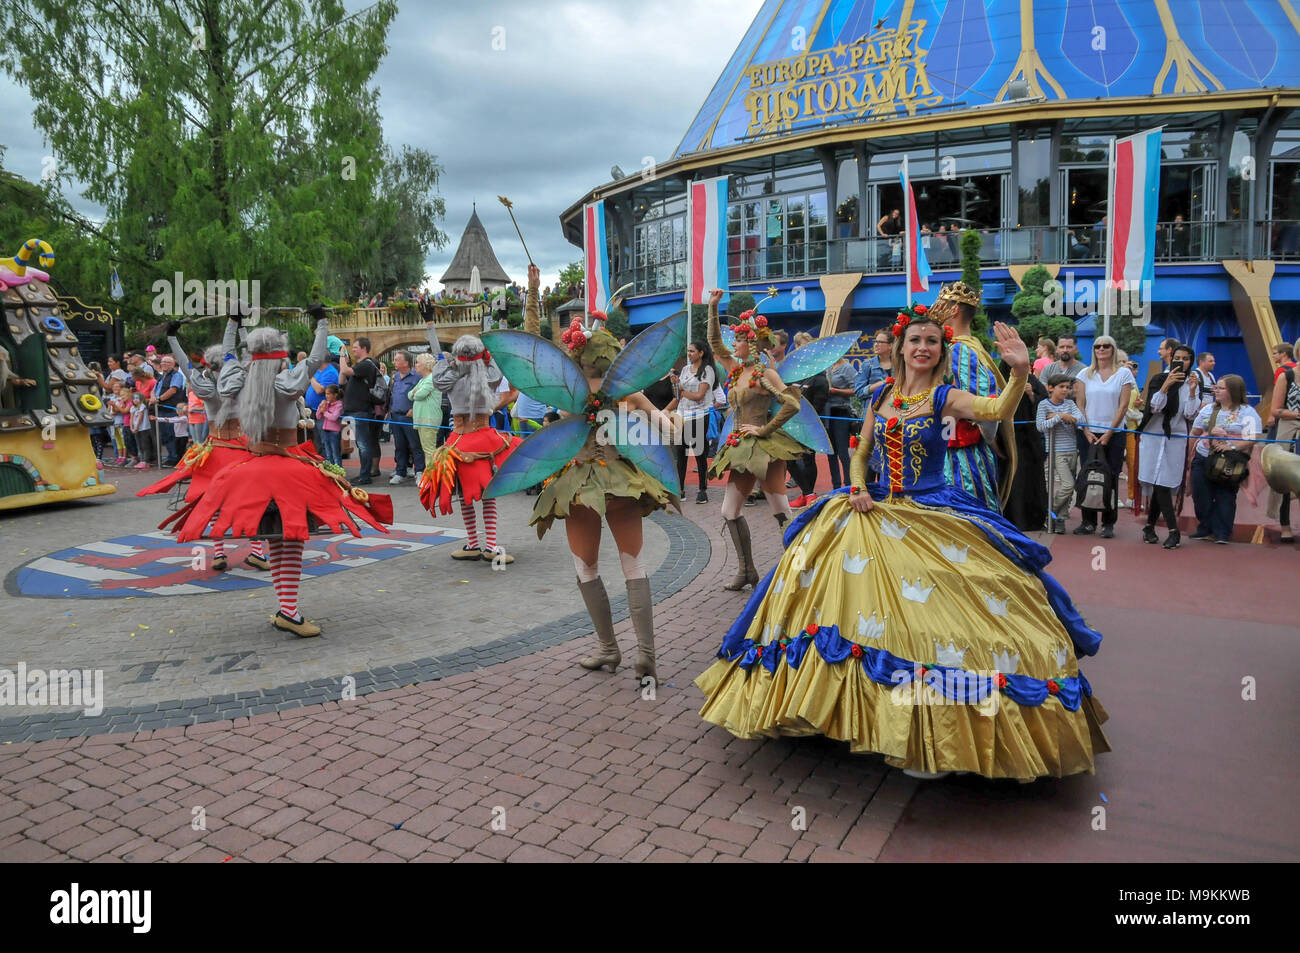 The Parade at Europa-Park is the largest theme park in Germany. is located at Rust between Freiburg and Strasbourg, France. Stock Photo